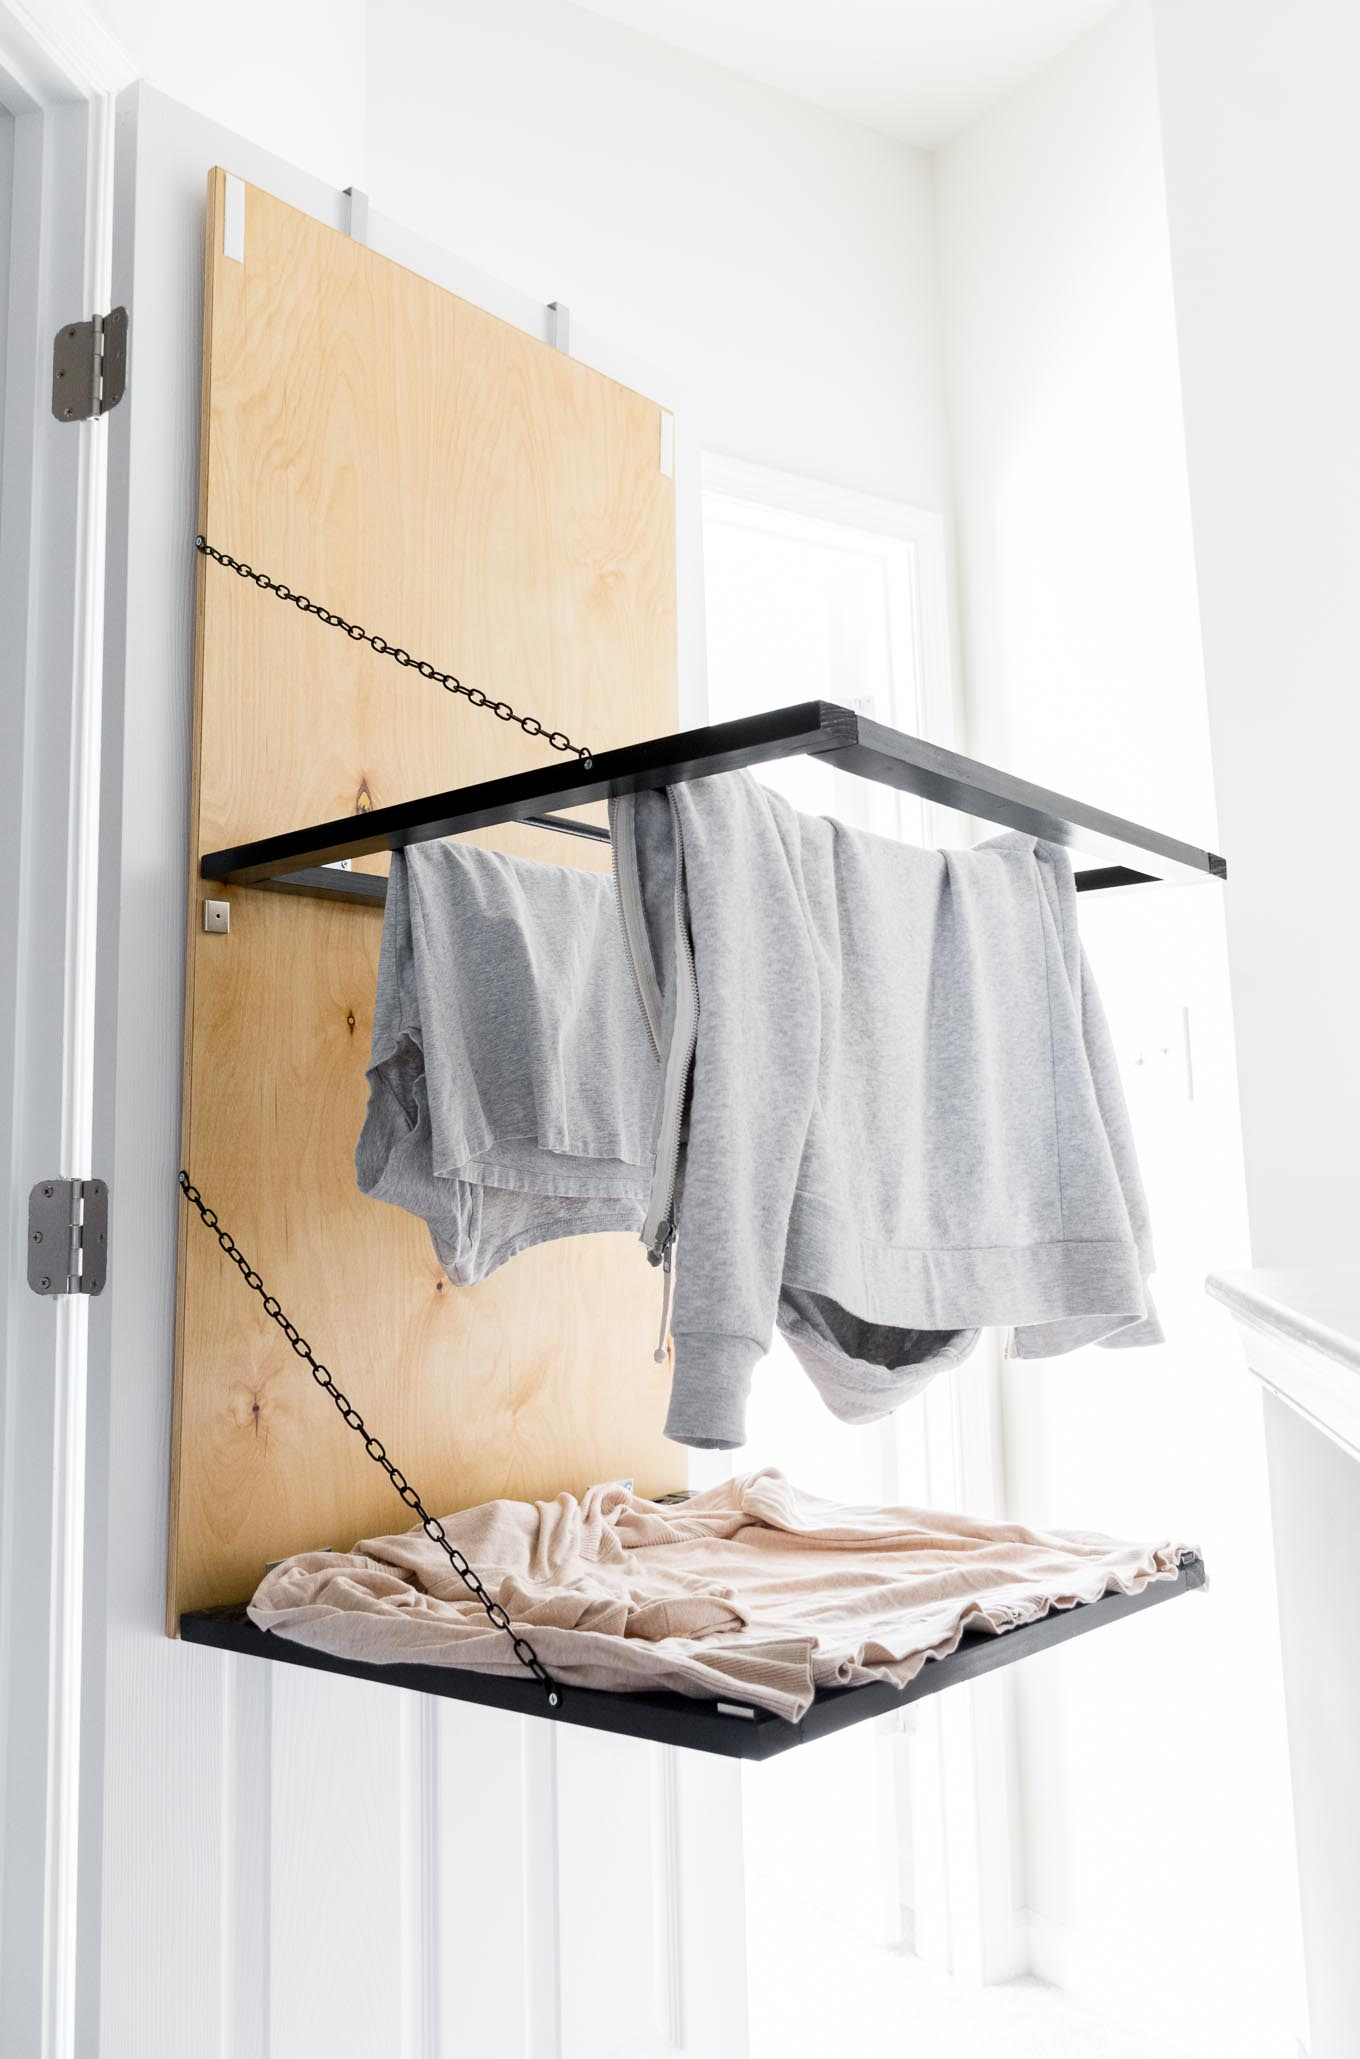 pull down drying rack